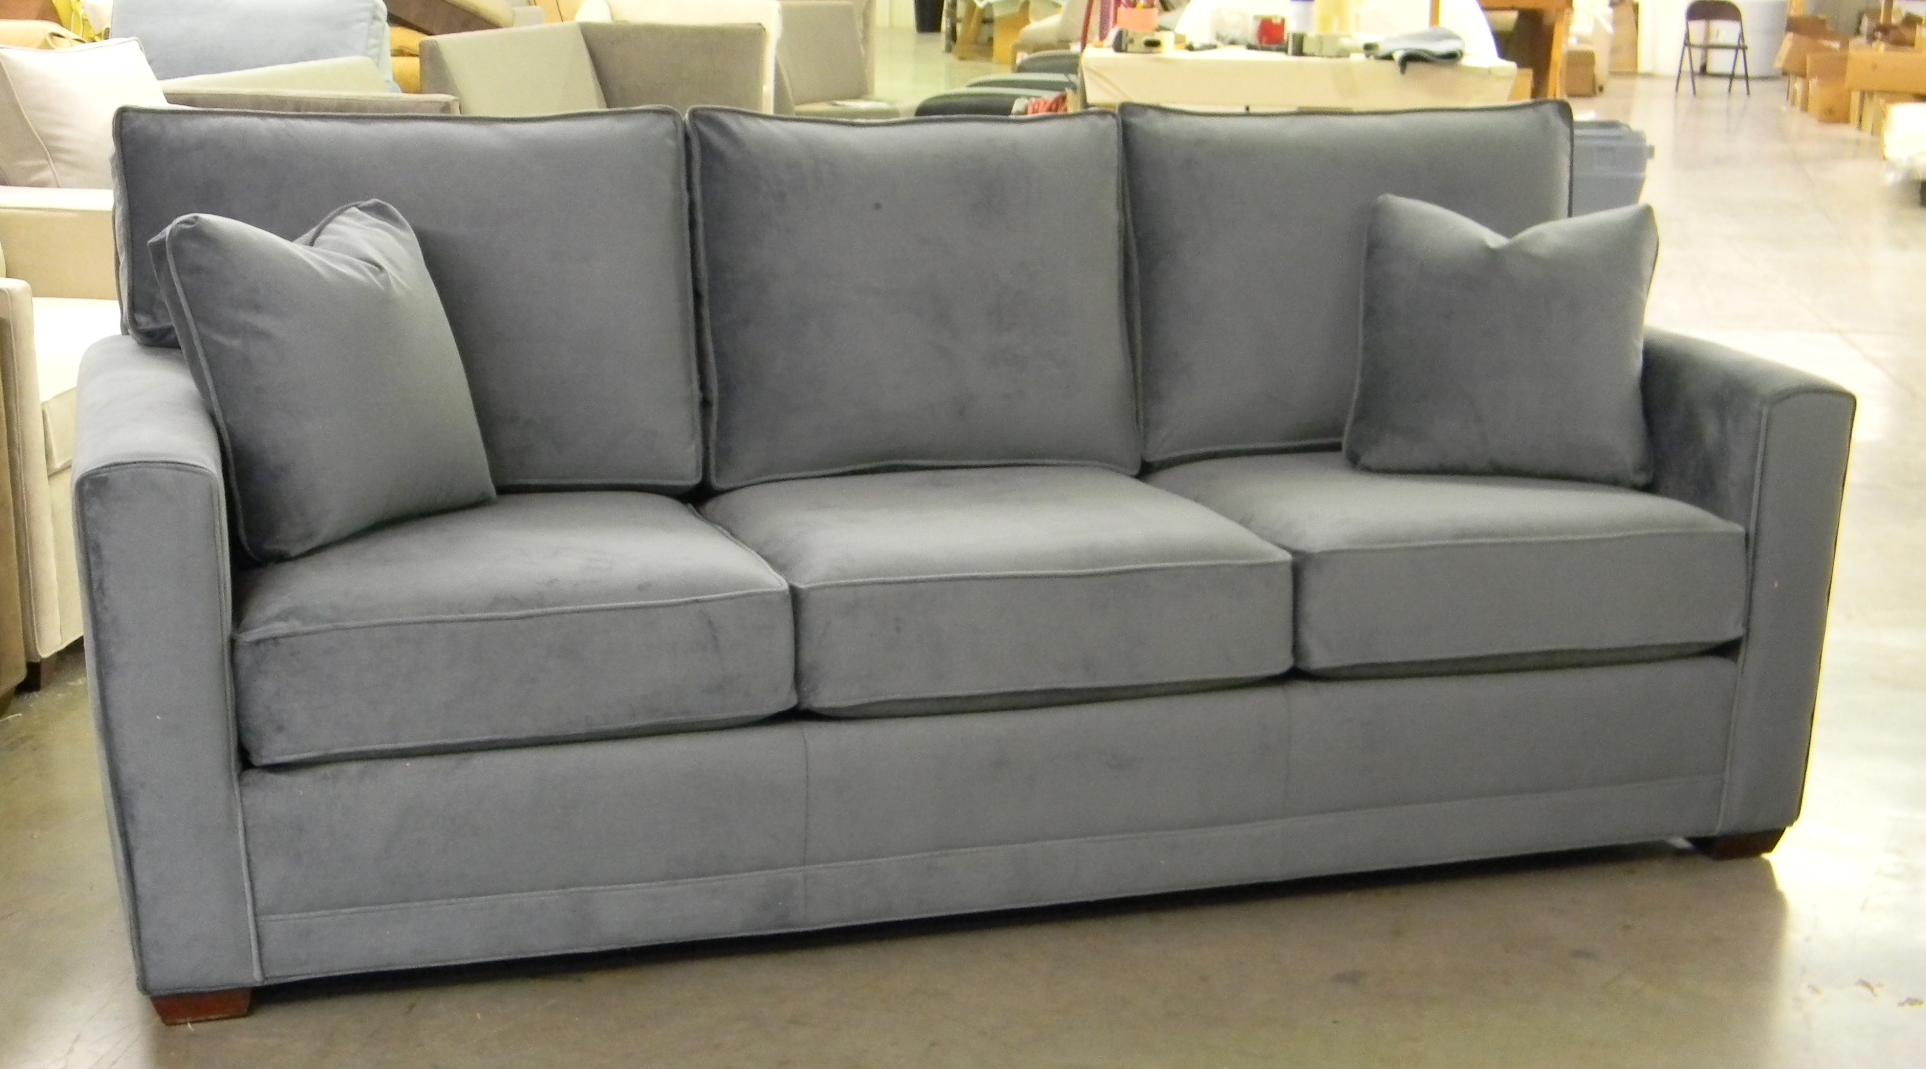 Sofa North York Sofas And Loveseats Sectionals Sectional Sofas Custom North